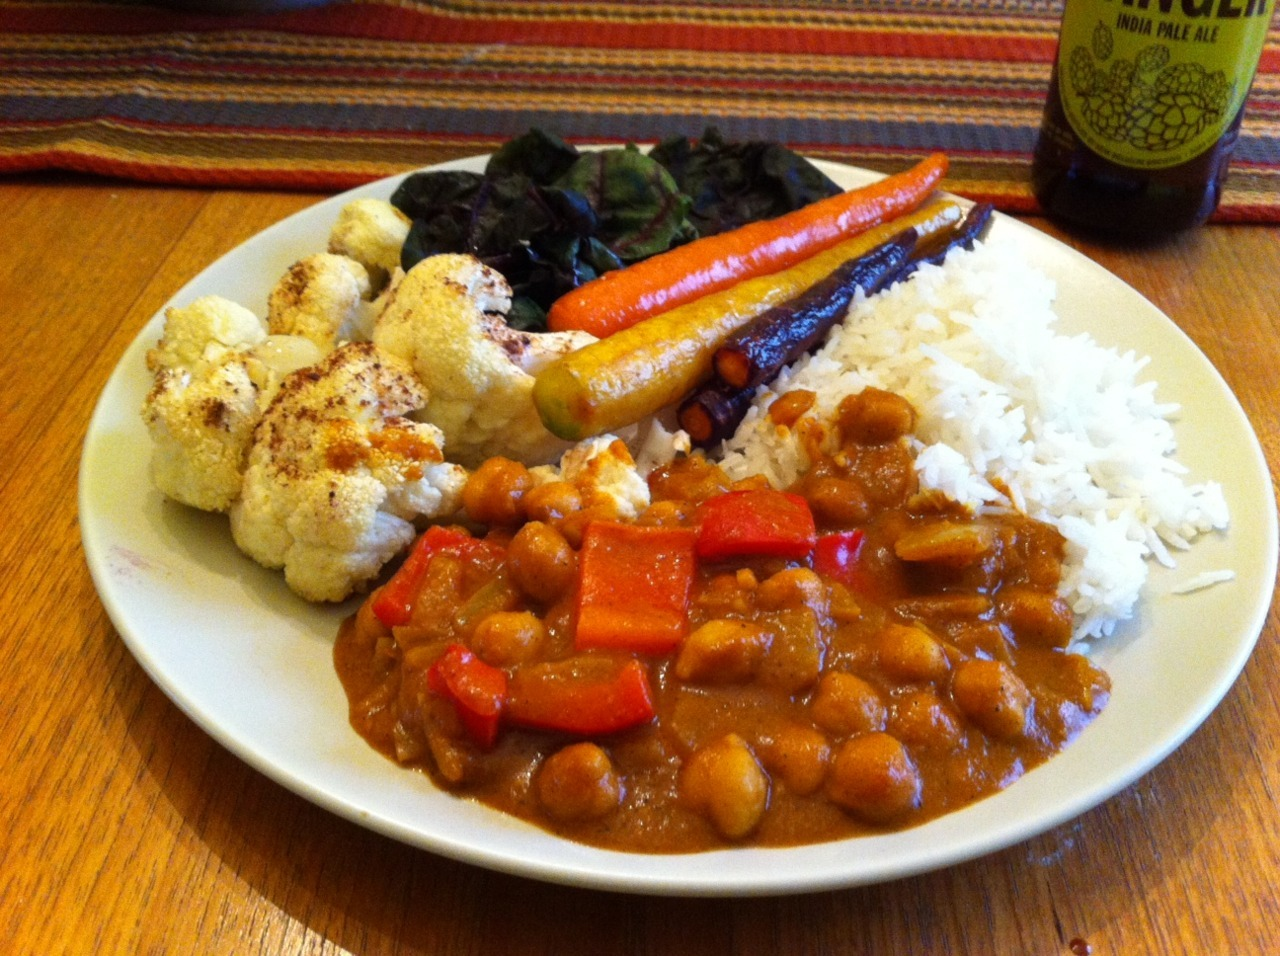 March 30, 2012 Chickpea korma with coconut jasmine rice, roasted garam masala cauliflower, roasted rainbow carrots, and steamed chard.  Here is the korma recipe I used (SO GOOD), and here is a recipe for the coconut rice, although it's relatively self-explanatory. I saved my leftover coconut milk, because I think it would make a badass, if a little fatty, base for a fruit shake.  SO MANY LEFTOVERS.